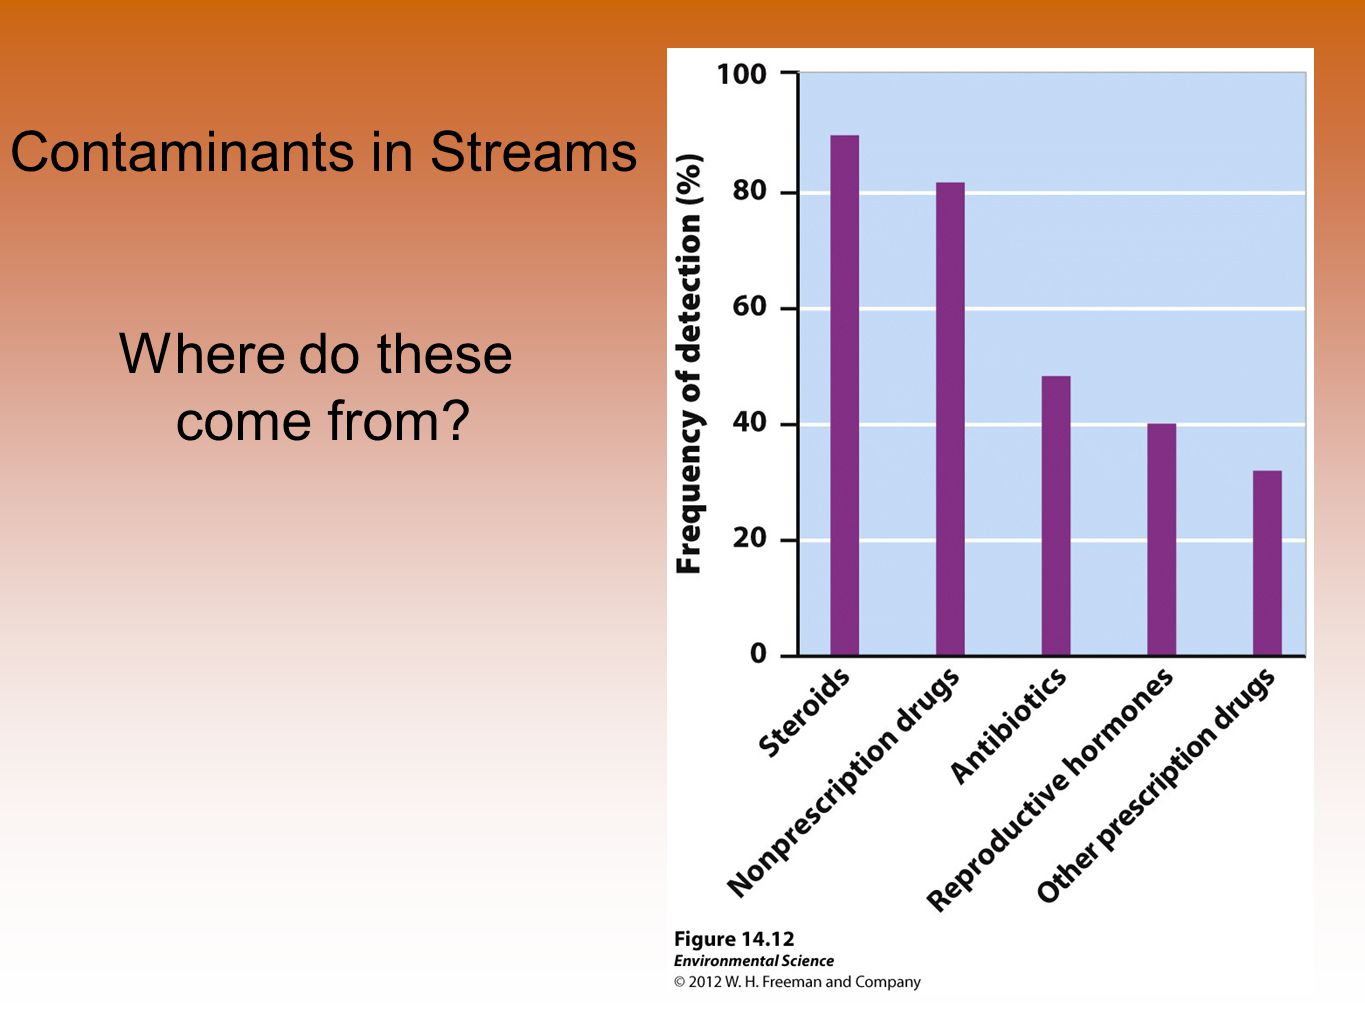 Contaminants in Streams Where do these come from